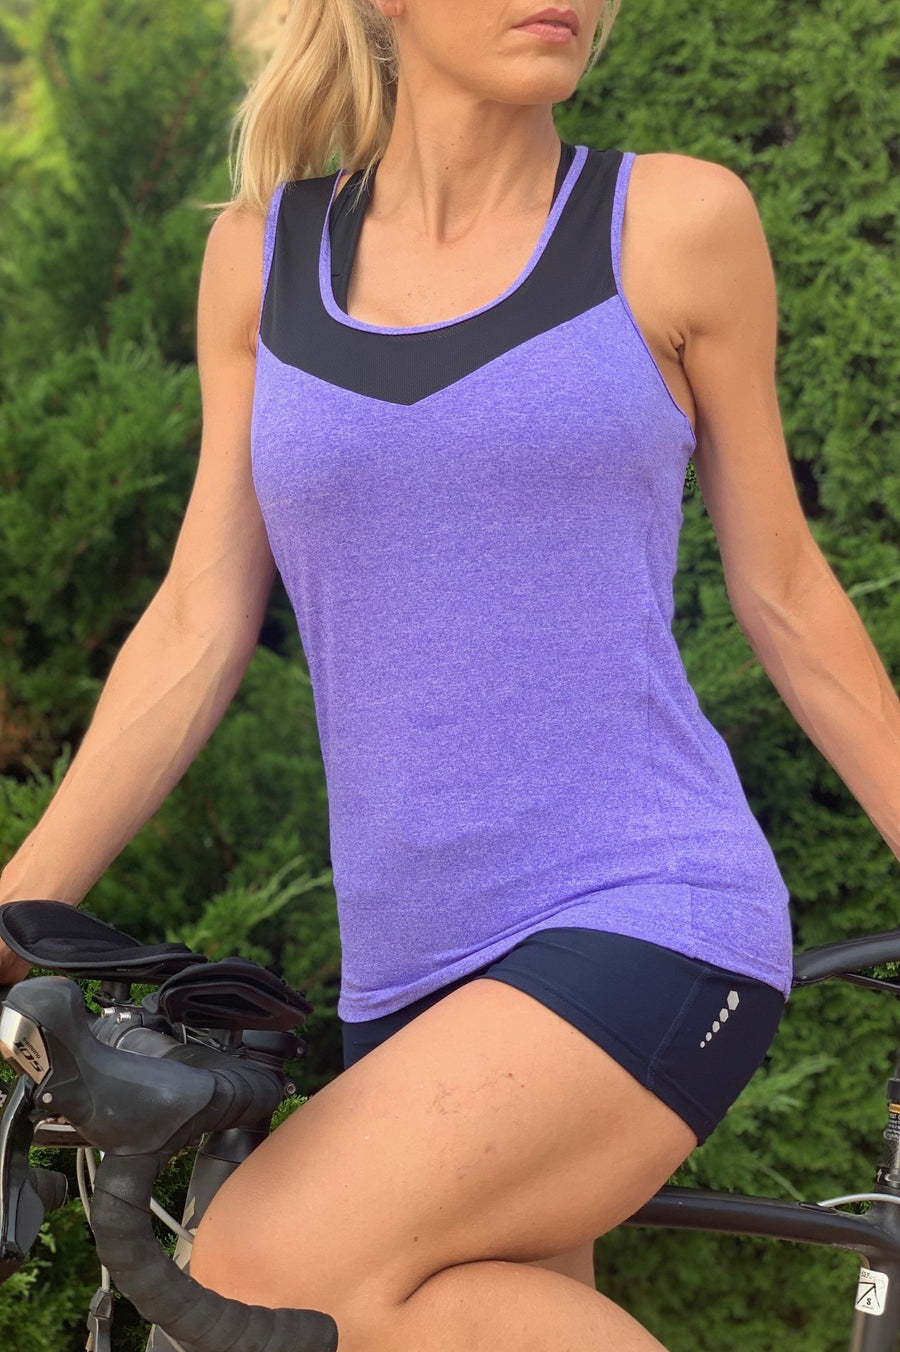 Women's Cycling/Running Racerback Tank Top with Pockets - Urban Cycling Apparel